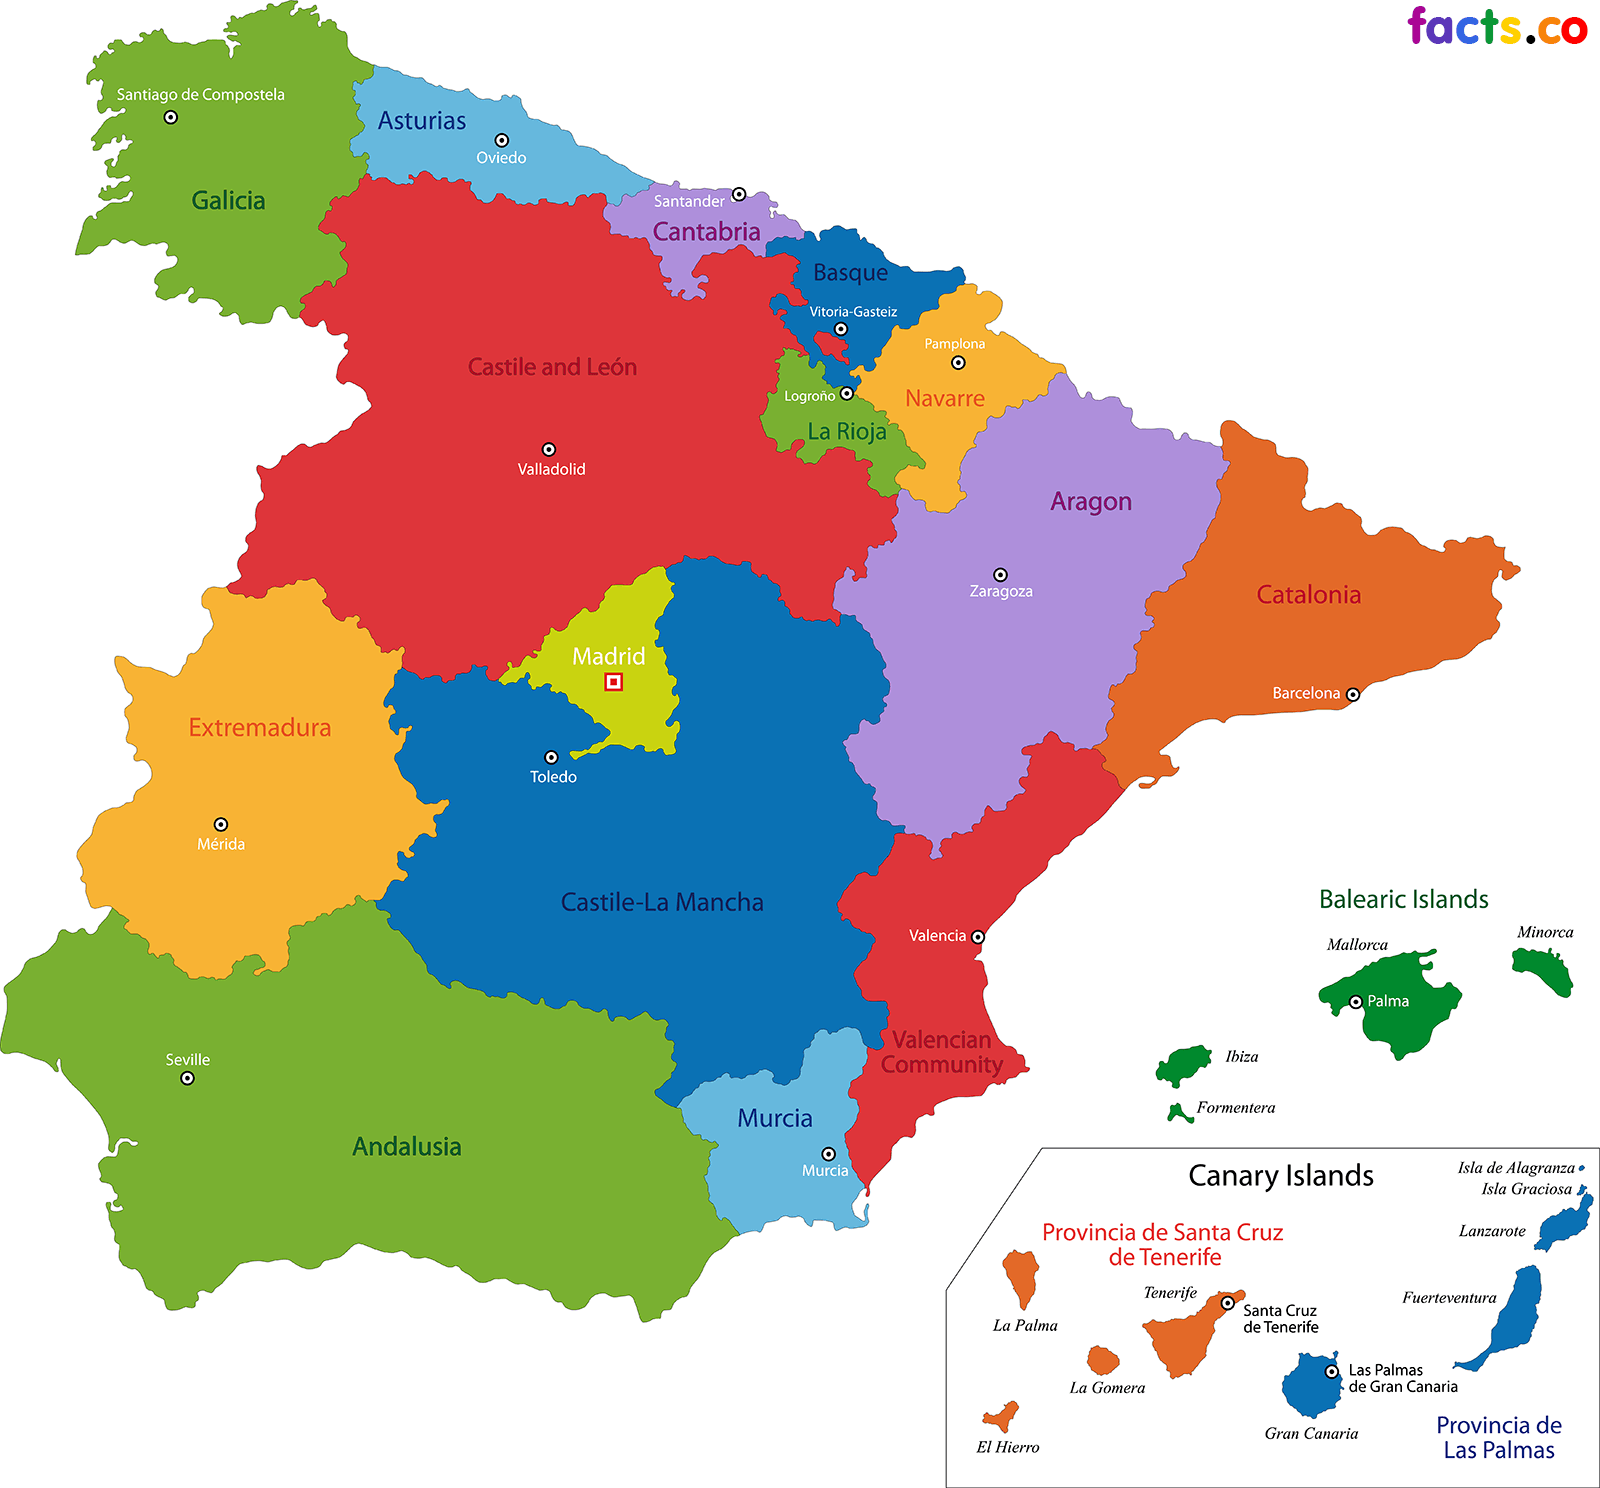 Spain Map Blank Political Spain Map With Cities Span - Spain political map